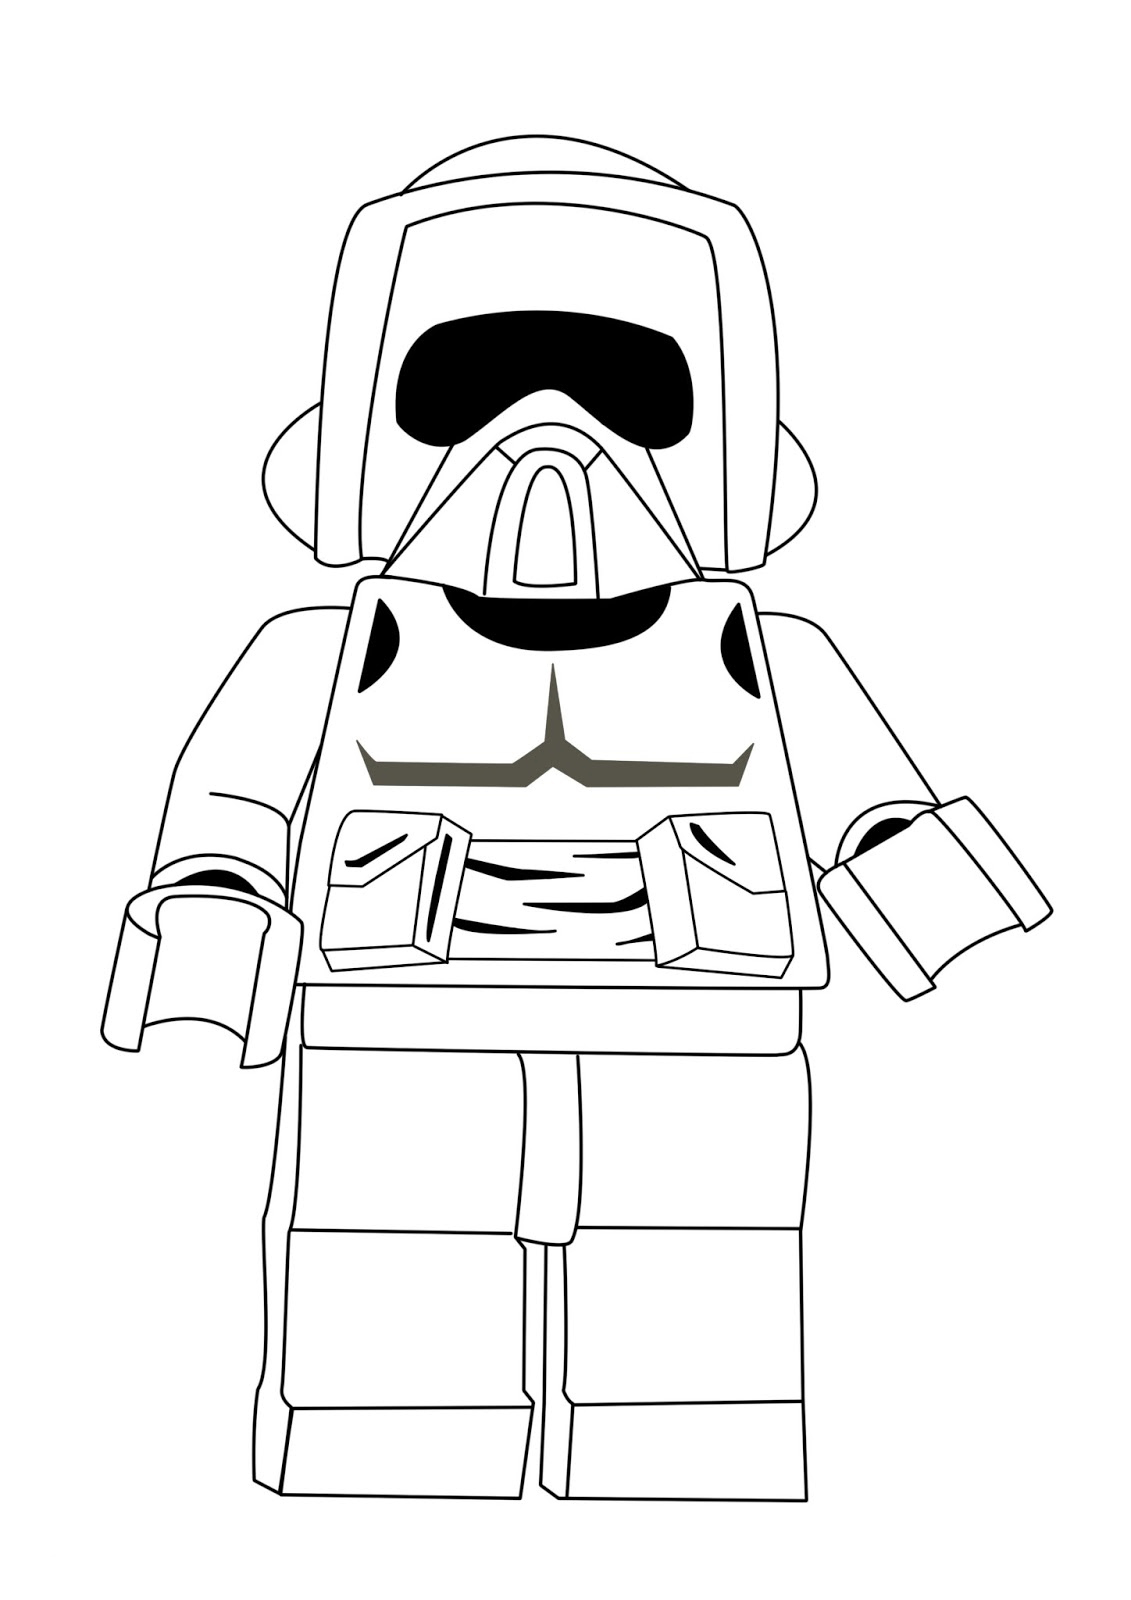 Lego Coloring Pages Star Wars Lego Star Wars Coloring Pages Best Coloring Pages For Kids